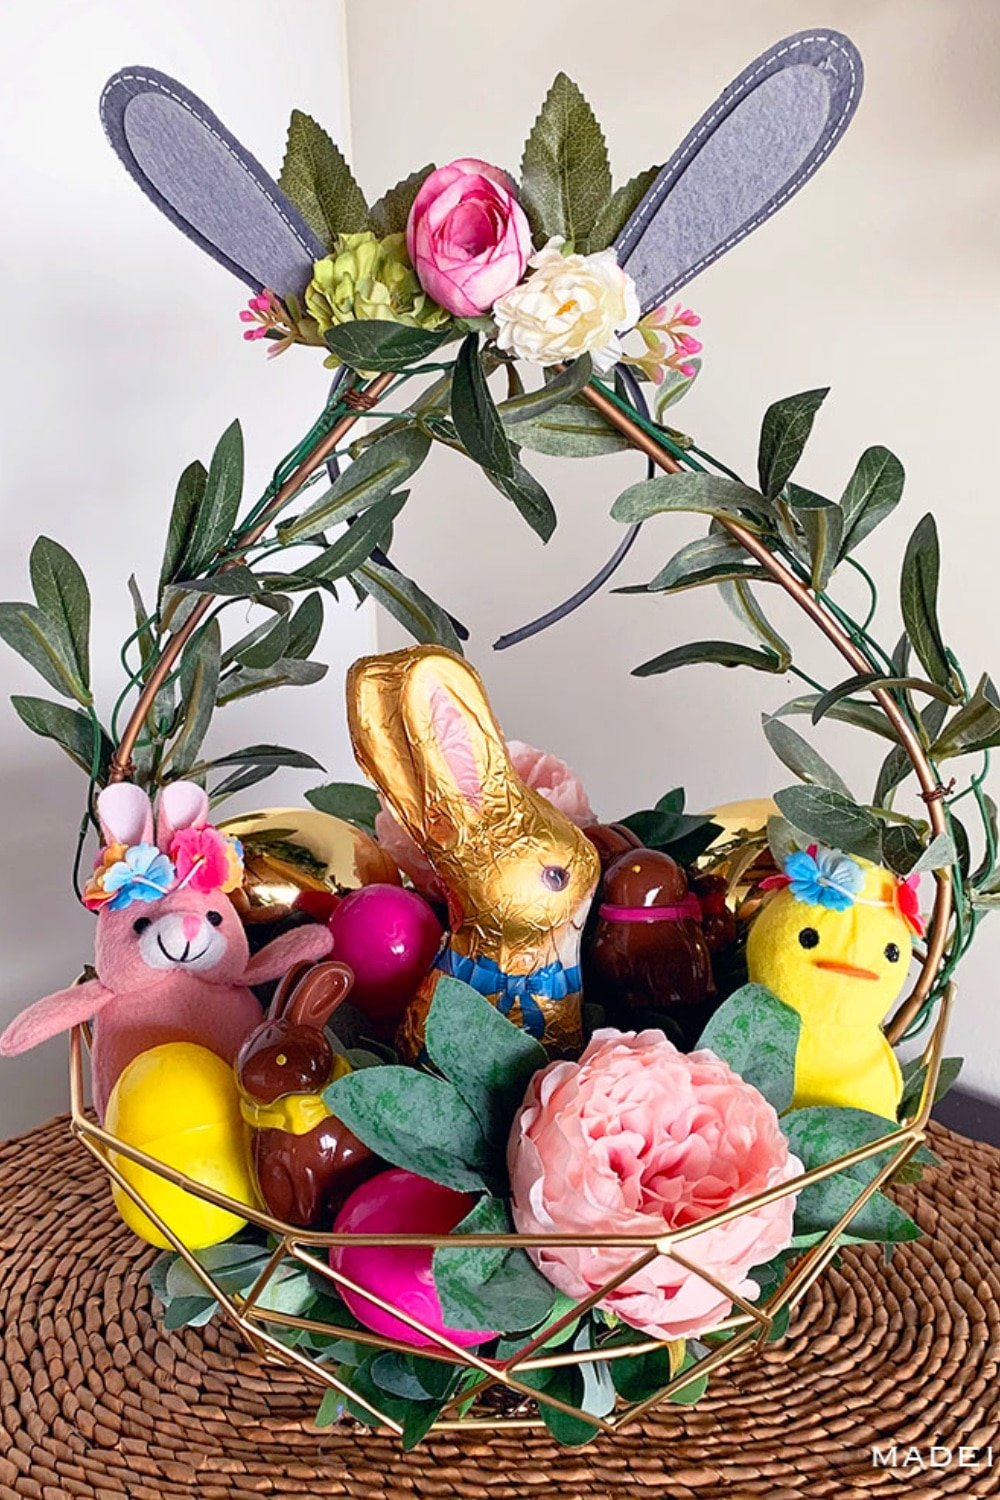 Charming Boho Style Woodland Easter Basket